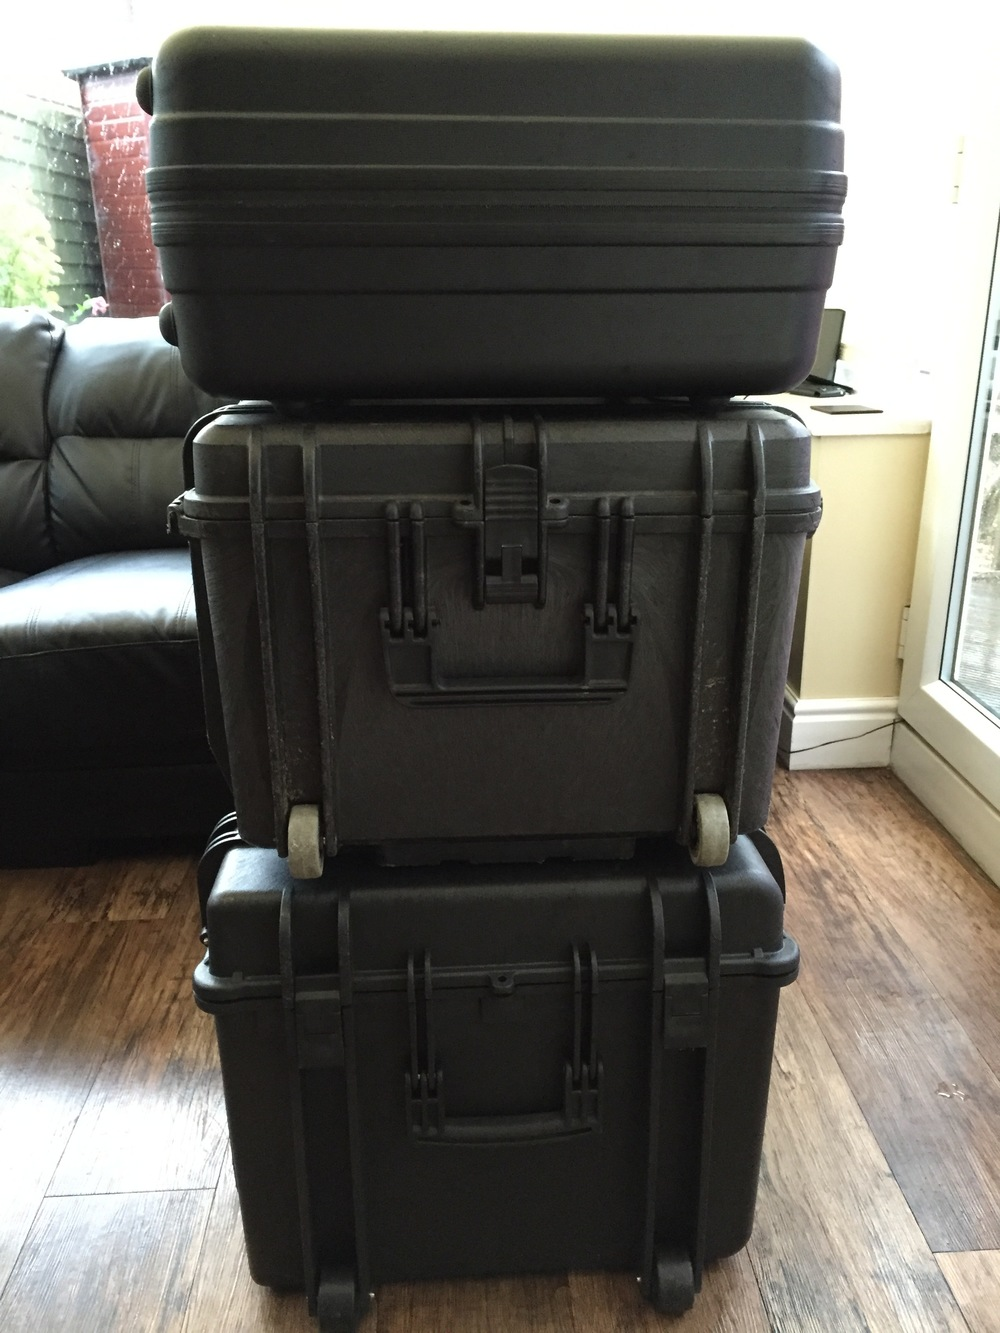 End View: DJI Inspire 1 Case (top), Multi Rotor Axessories Inspire 1 Travel Mode Case (middle) and Panzer Cases Aurora Inspire 1 Flight and Travel Mode Case (bottom).